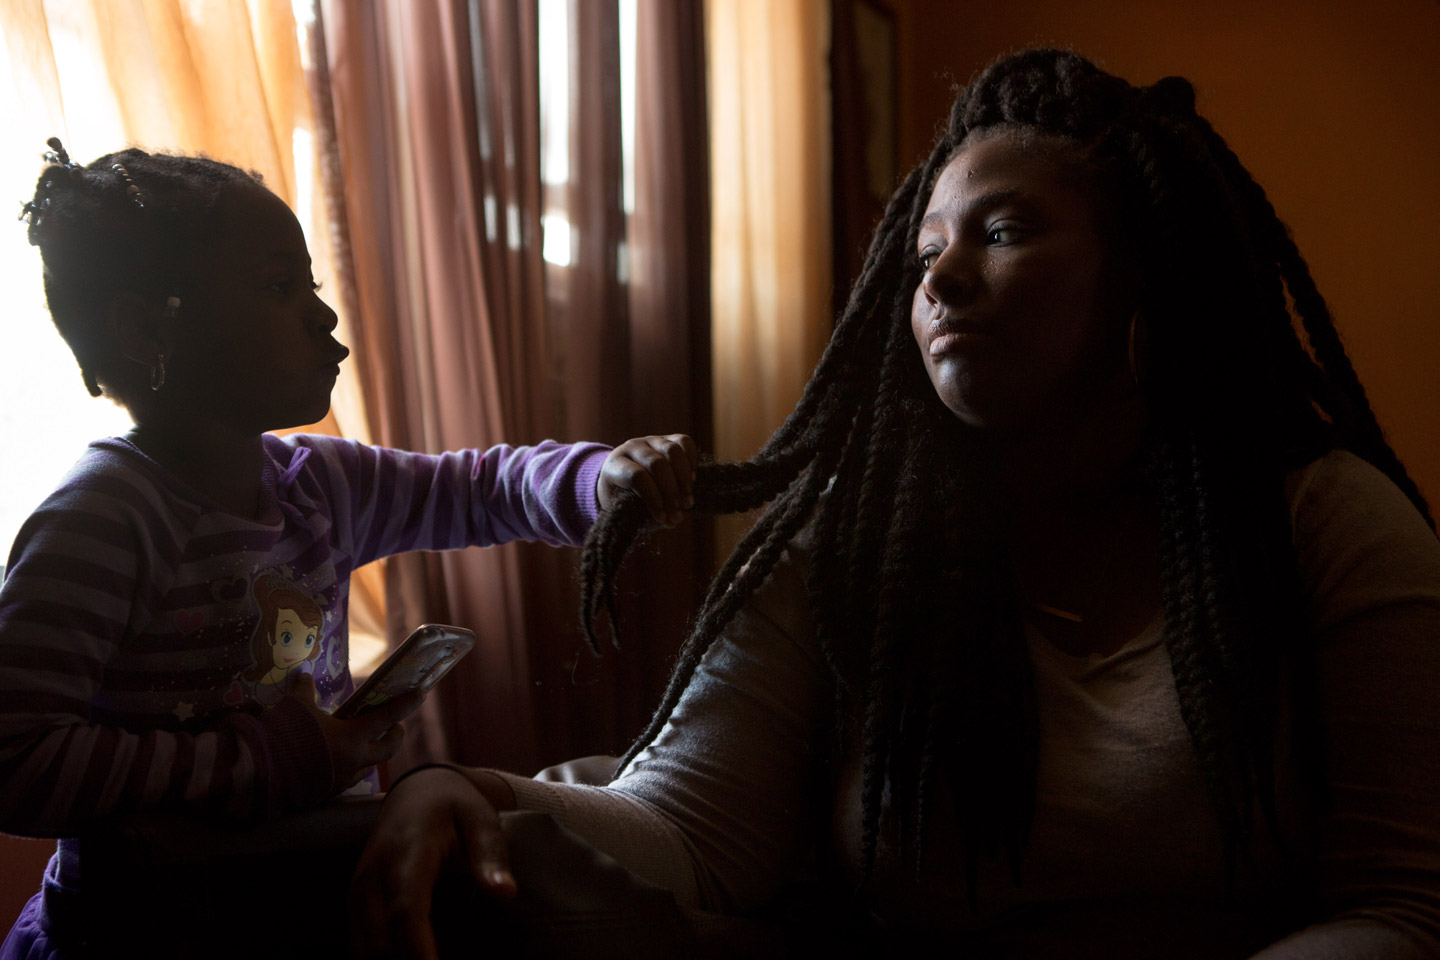 Kelly Holsey is comforted by her daughter Peyten Carter, 5, in the living room of her mother's home in the suburbs of Baltimore, Maryland, April 23, 2016. Holsey's fiancÈ Keith Davis Jr. was recently shot by police and is now in prison charged with murder-- all unfairly according to Holsey.  (photo by Allison Shelley)